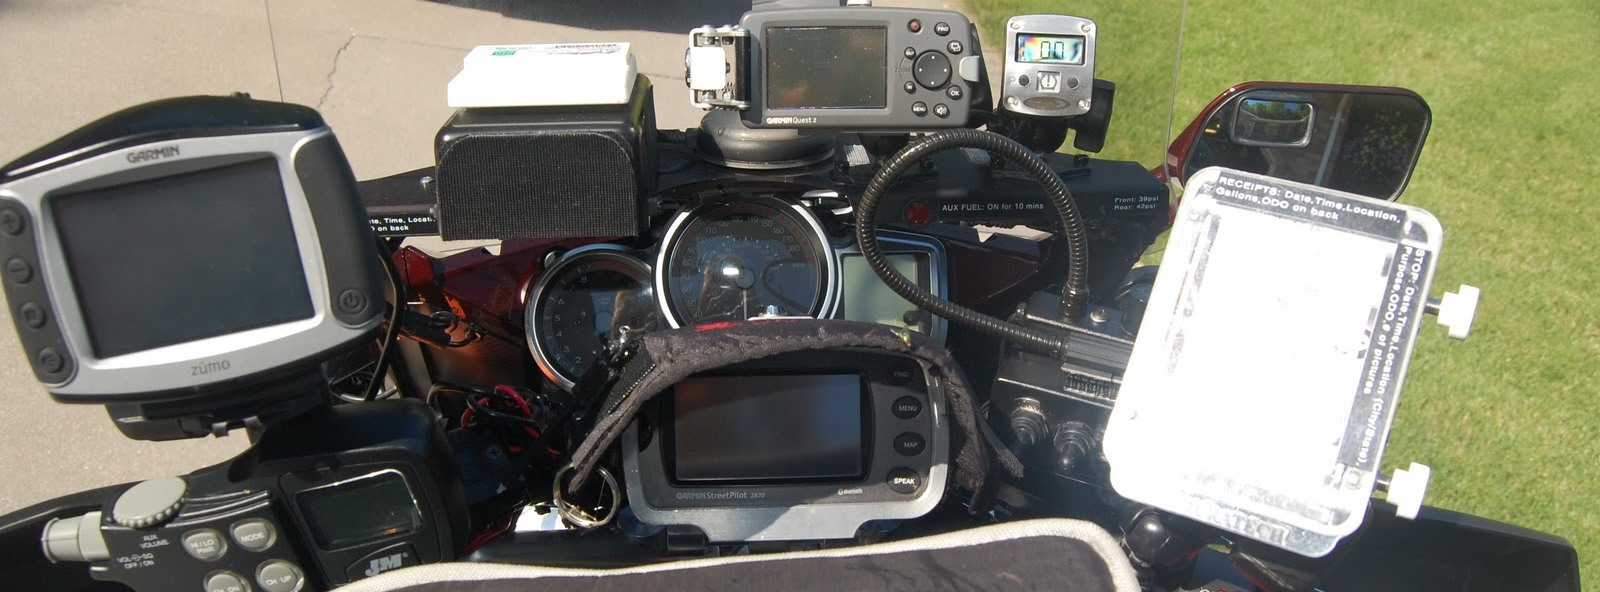 Factors to Consider When Choosing a Motorcycle GPS